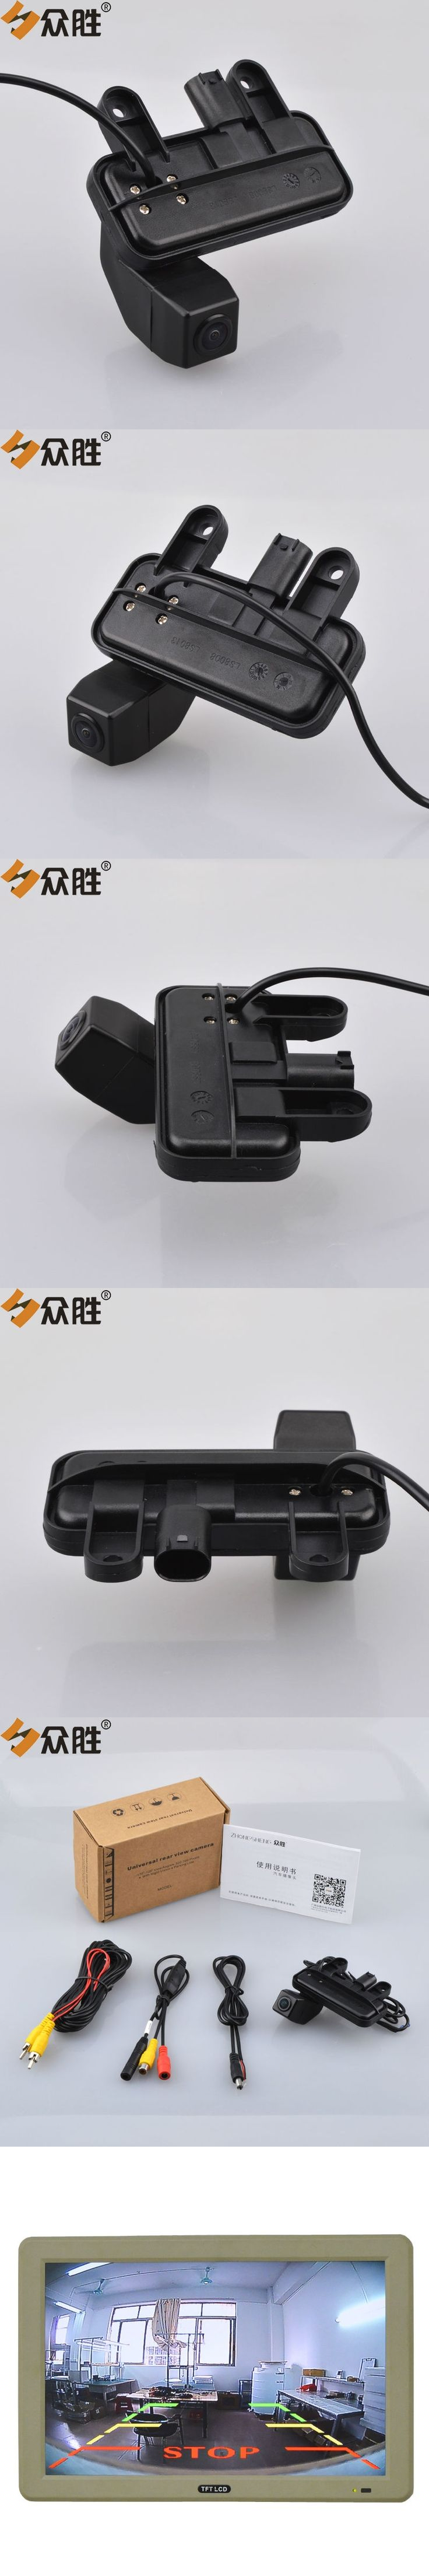 Car Trunk Handle Camera for Mercedes Benz E Class W212 2010-2016 Car Rear View Backup Reverse Parking Rearview Camera LS8013SMT